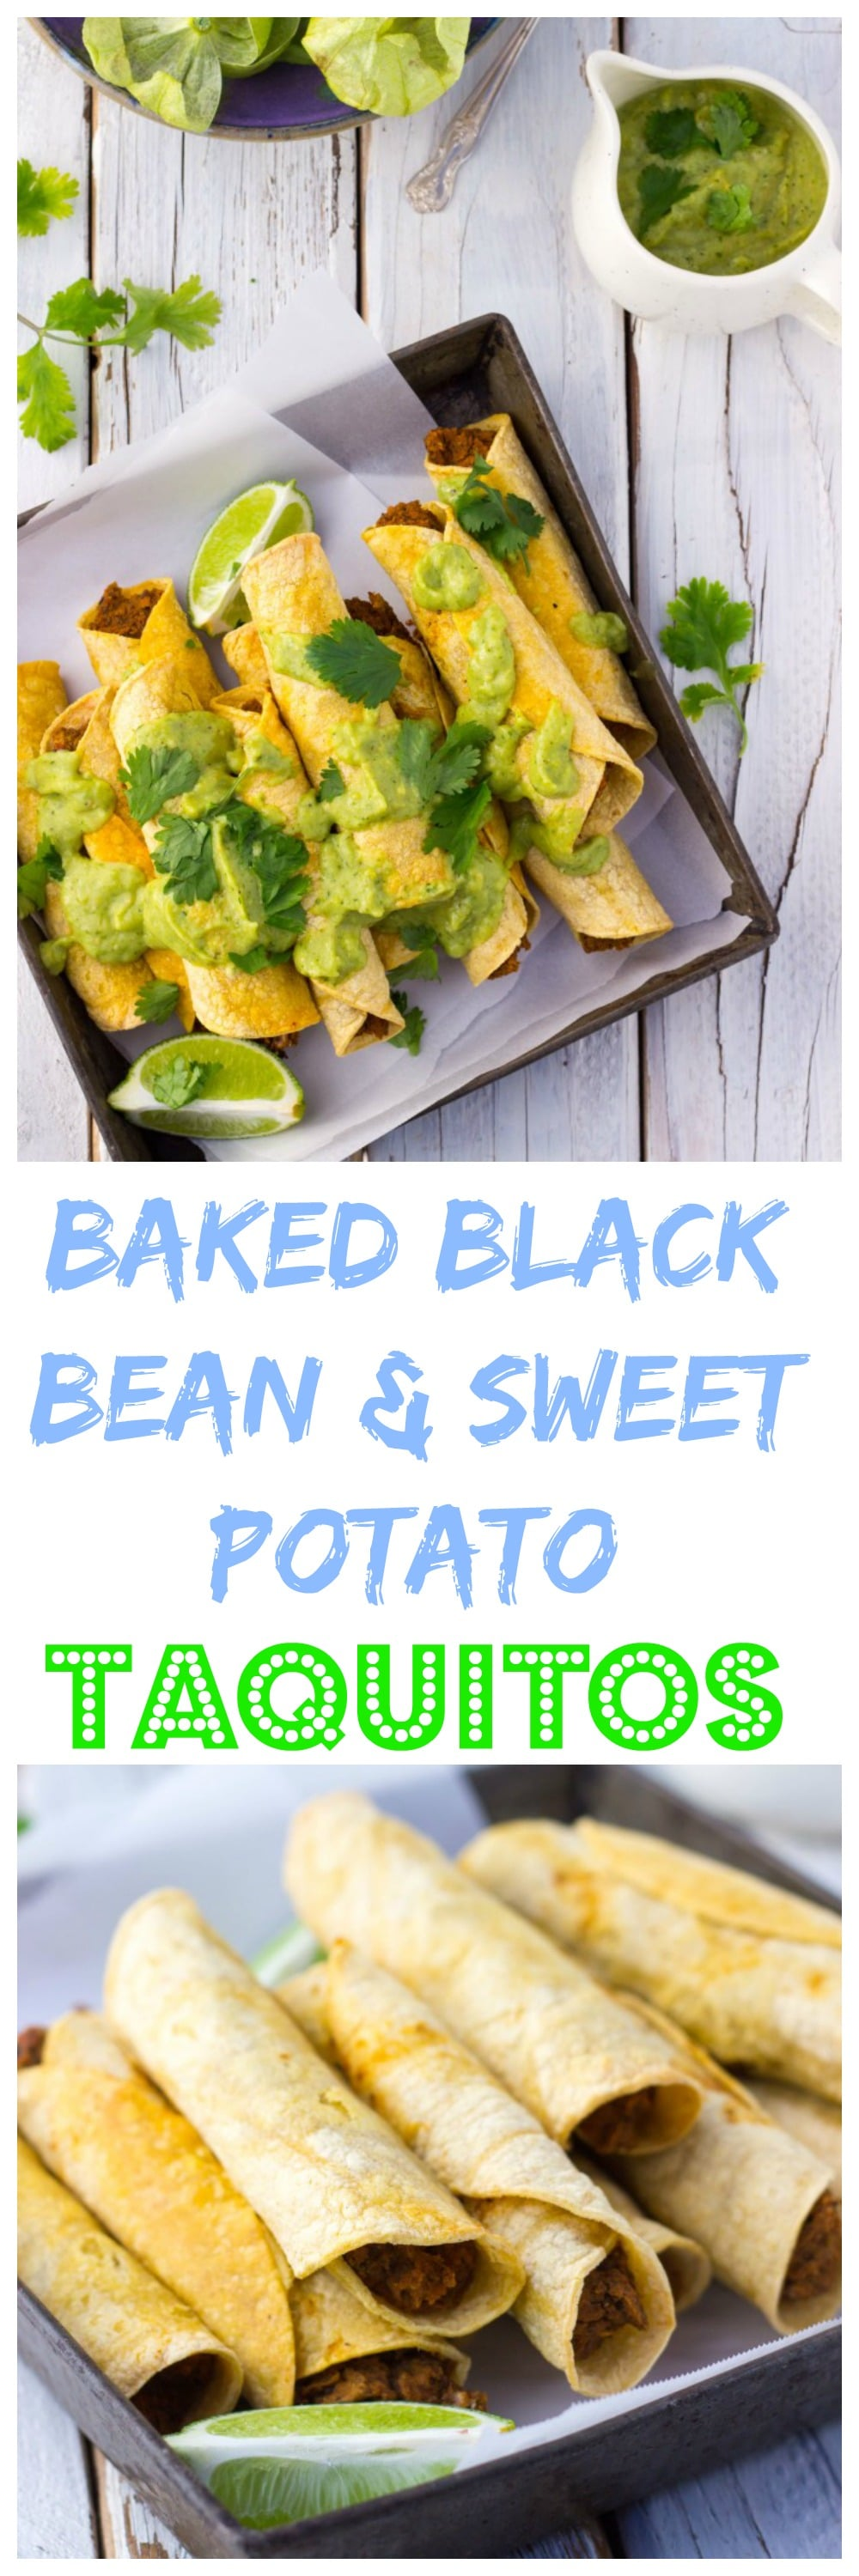 Baked Taquitos with Black Beans & Sweet Potato